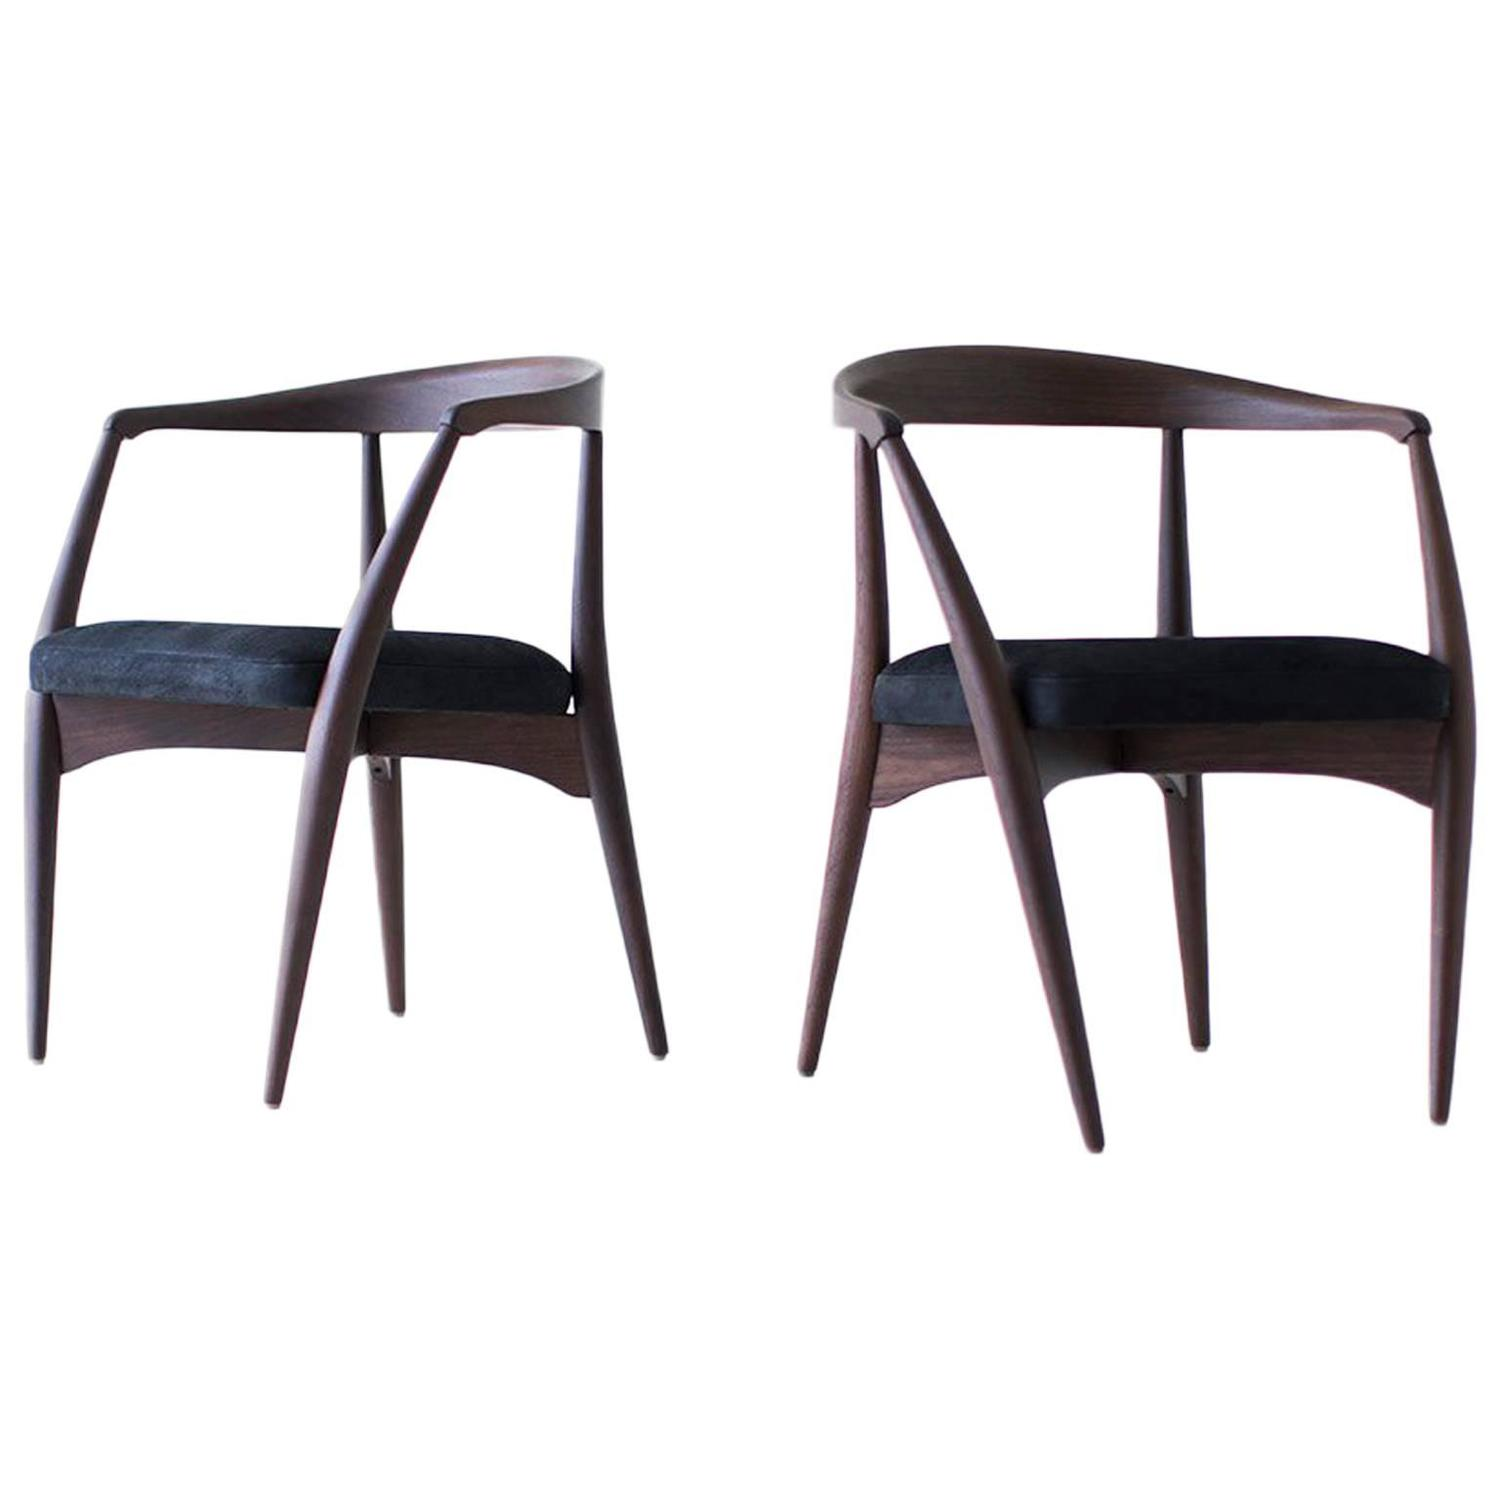 ... Richardson Brothers Dining Room Furniture Lawrence Peabody Dining Chairs  P 1708 Craft Associates Furniture ...